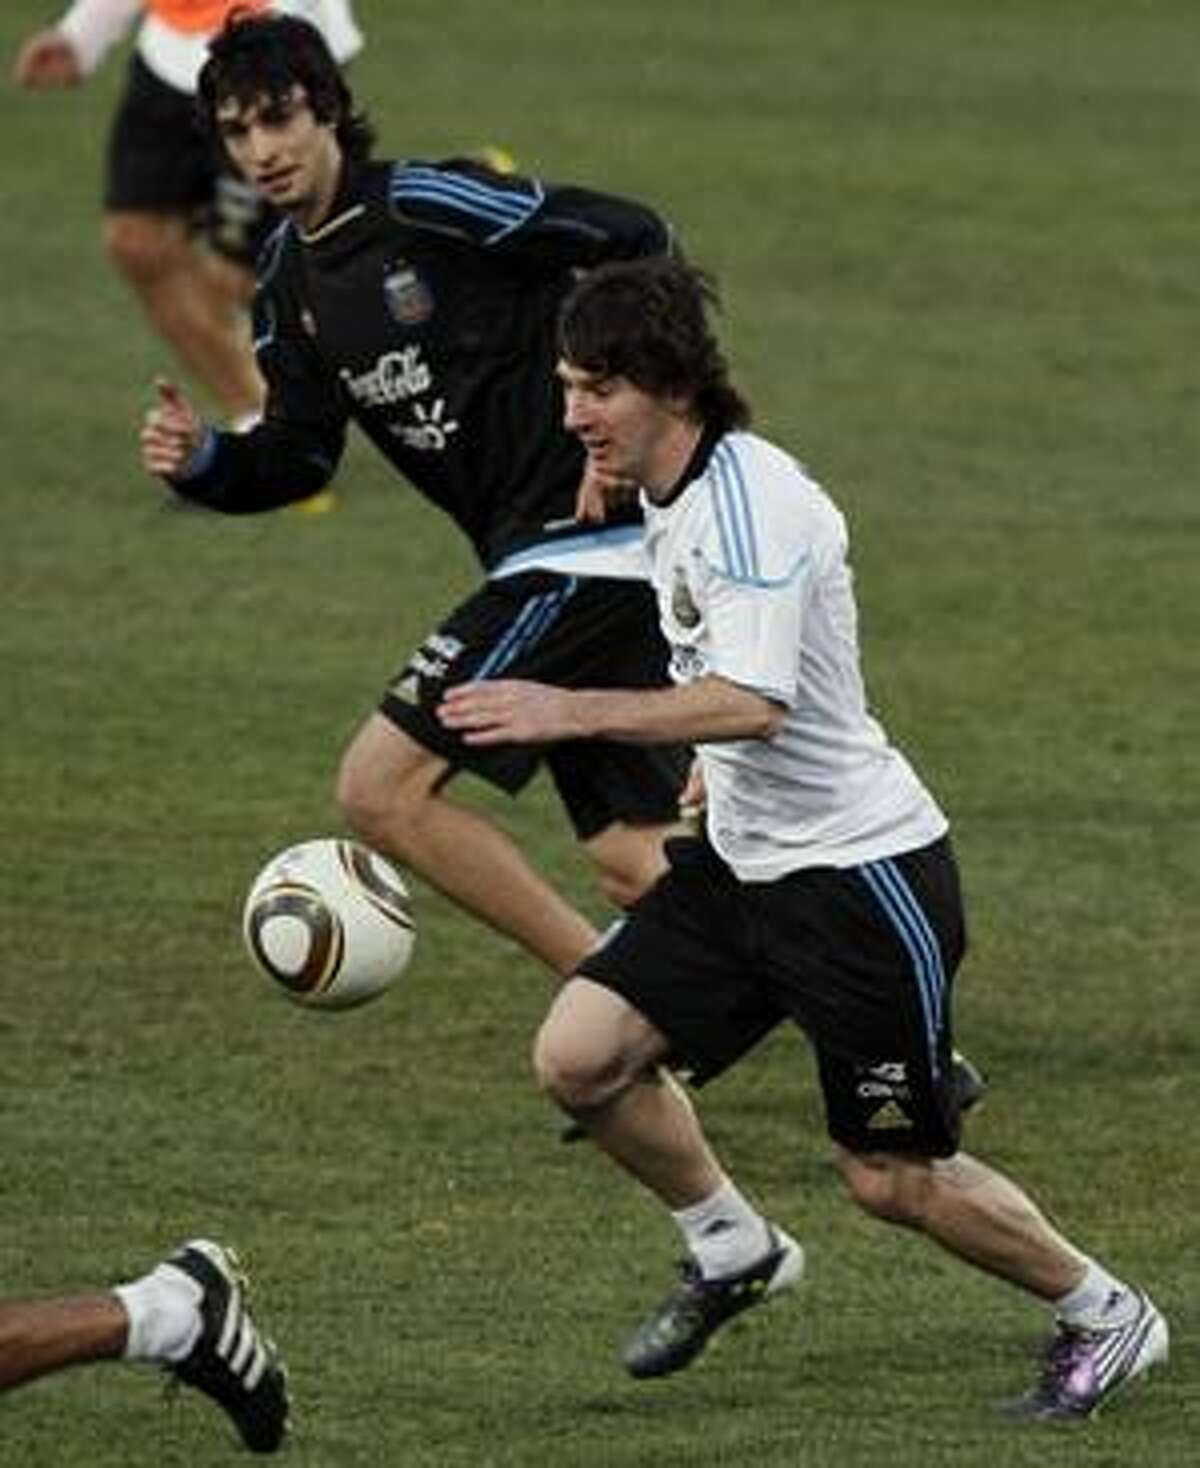 AP Argentina's Lionel Messi, right, runs with the ball during his team's practice in Pretoria, South Africa, Wednesday. Argentina will play Germany in a World Cup quarterfinal match on July 3.